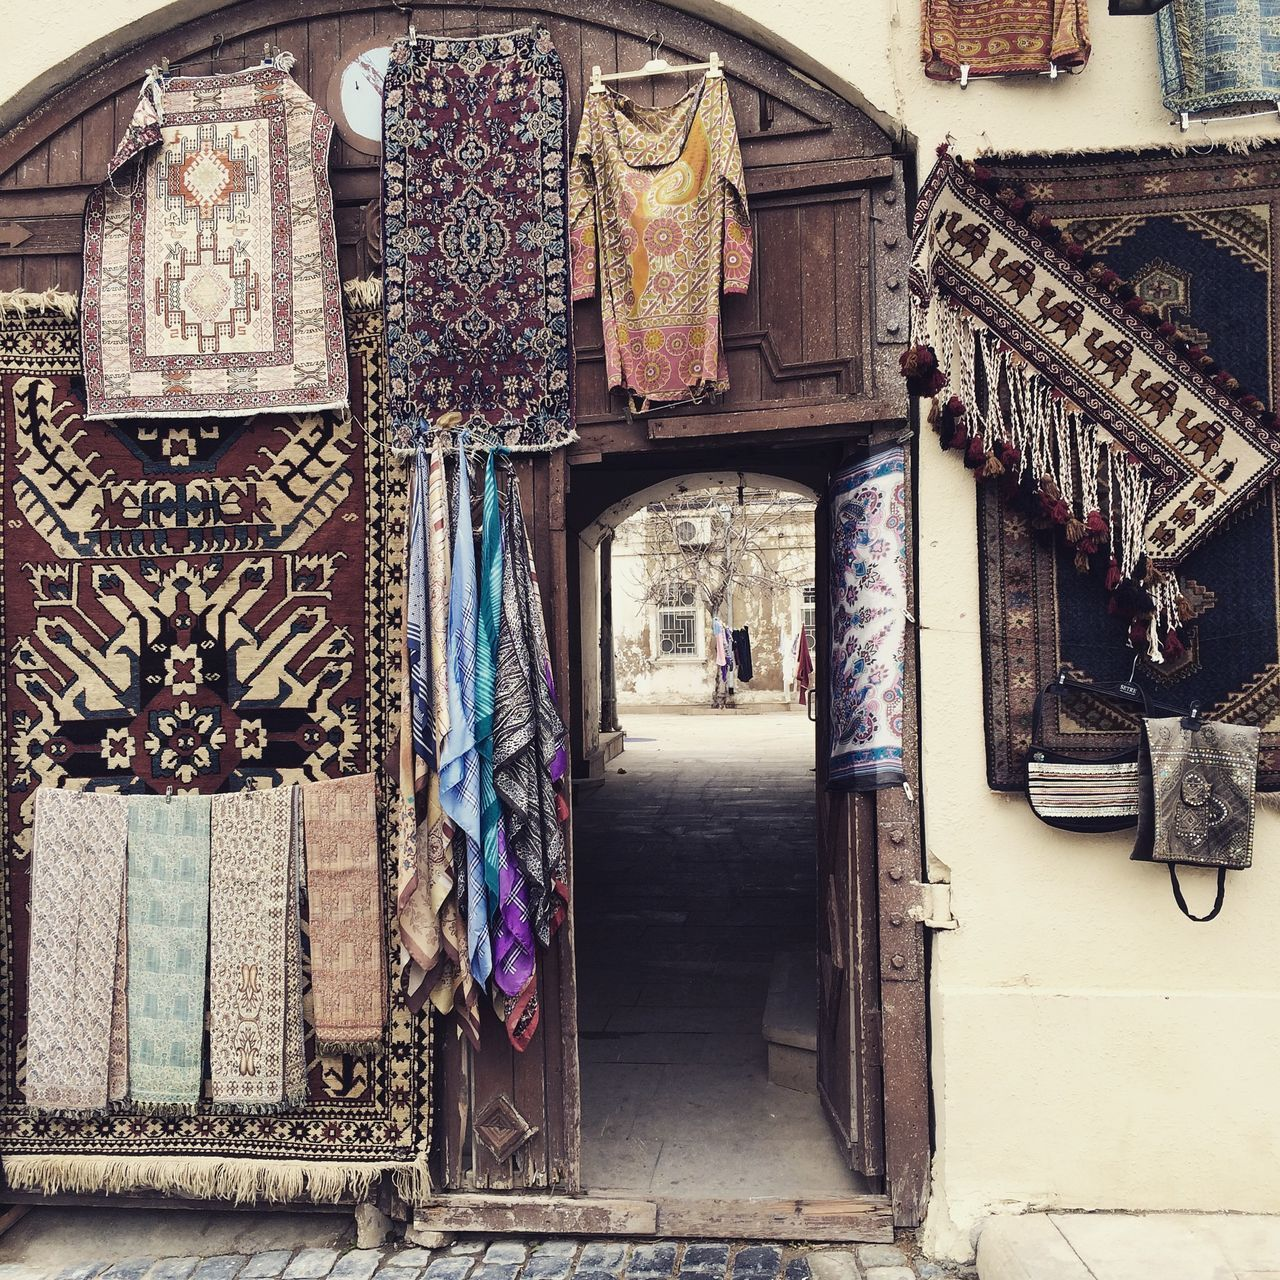 Baku Azerbaijan Souk Market Old City Carpet Handicrafts